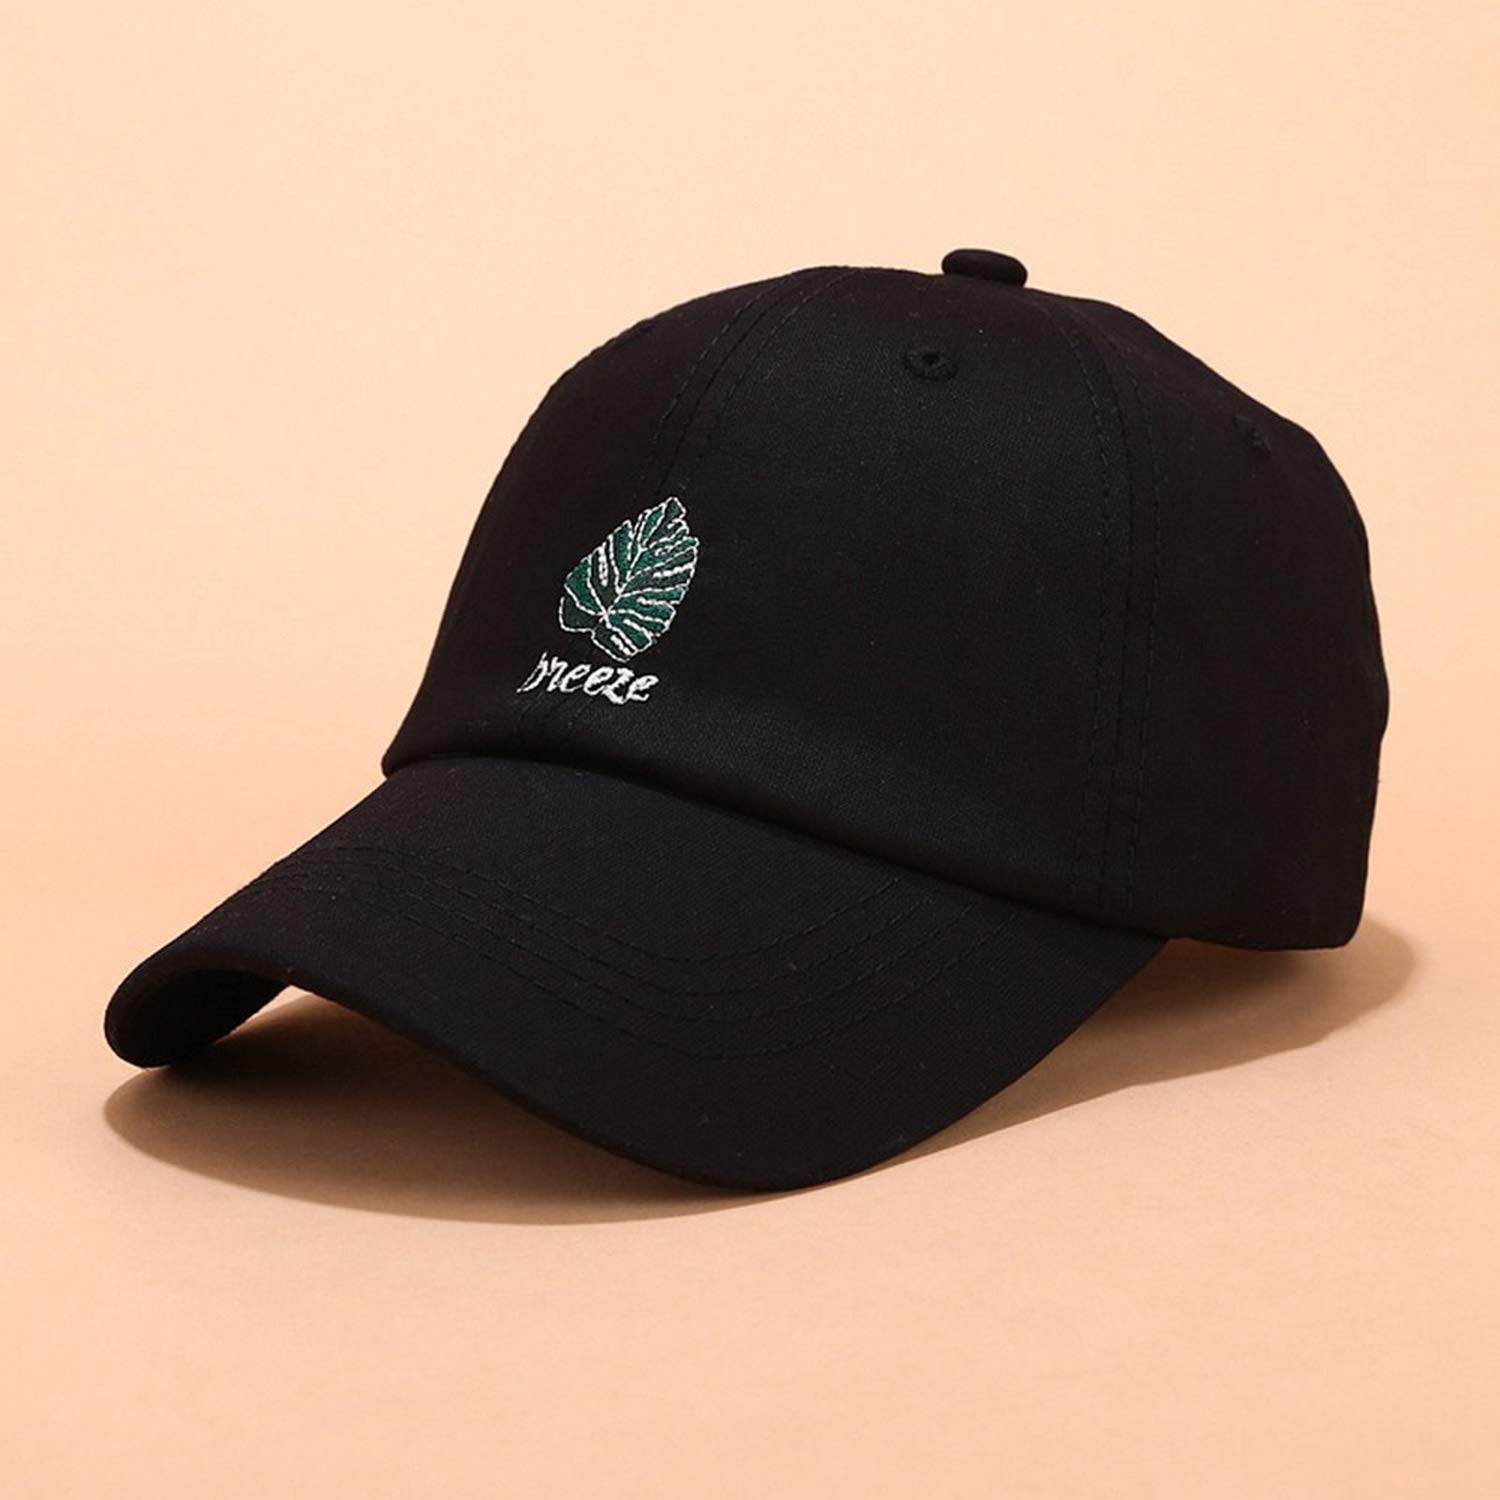 Summer Unisex Leaf Embroidery Full Cap Baseball Hat Women Men Cotton Gorras Bone Trucker Dad Hats Fashion Caps at Amazon Mens Clothing store: